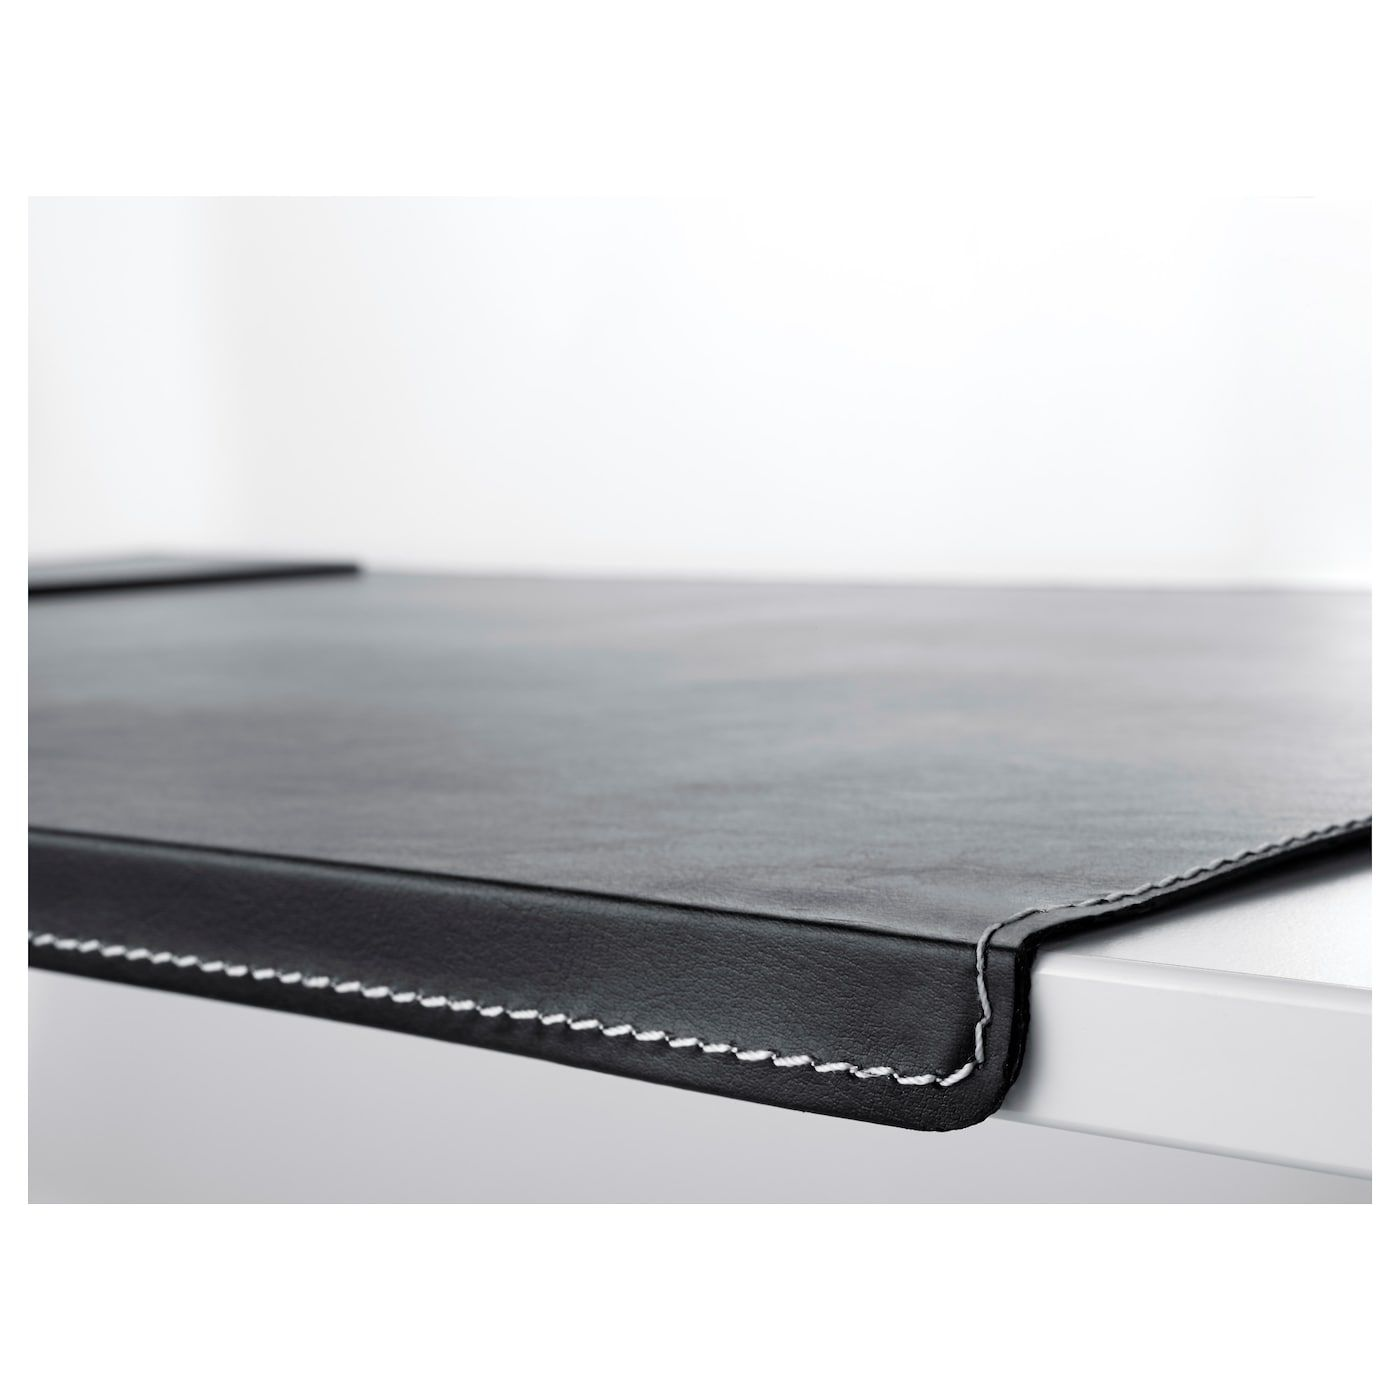 Rissla Schreibunterlage Schwarz Ikea Osterreich In 2020 Desk Pad Leather Desk Pad Diy Leather Desk Pad